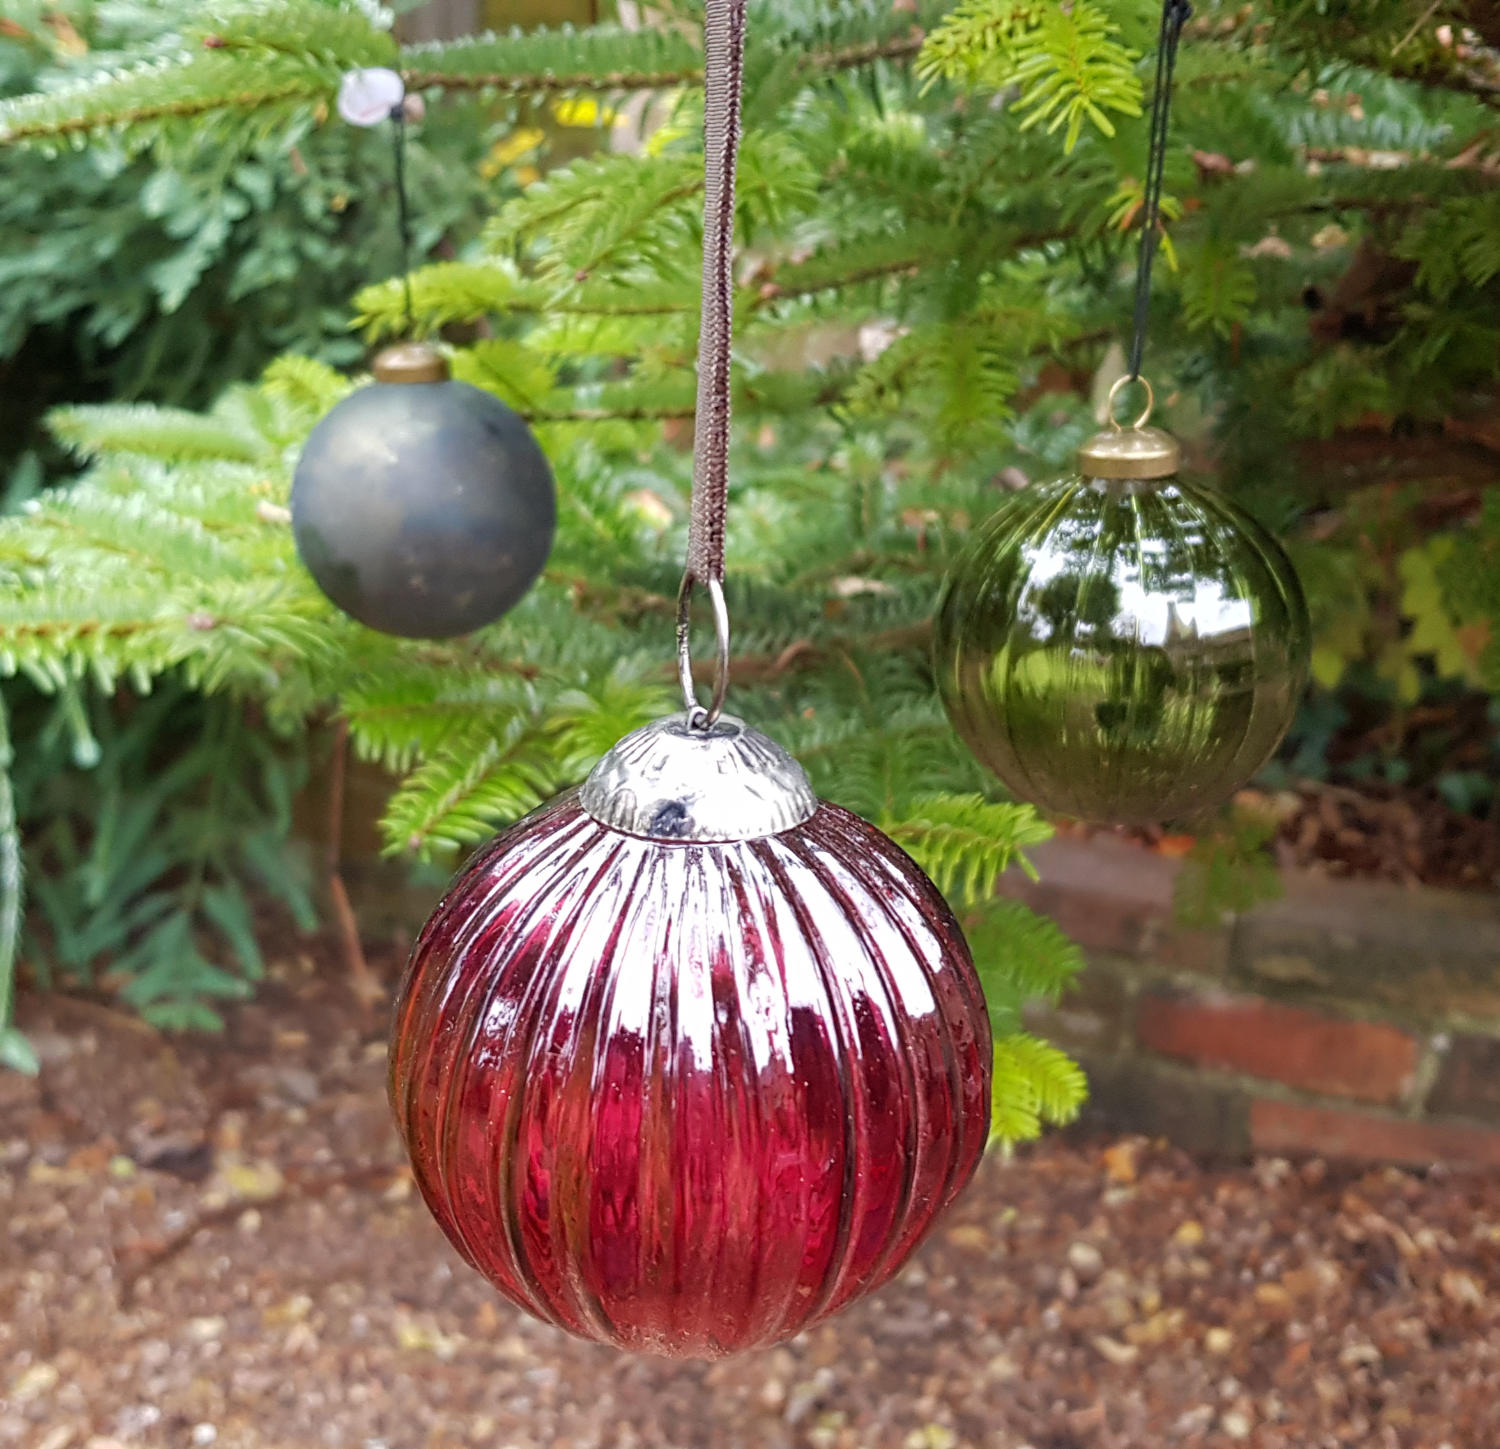 Vintage-style glass baubles on a Christmas tree in the garden at the Bottle Kiln.